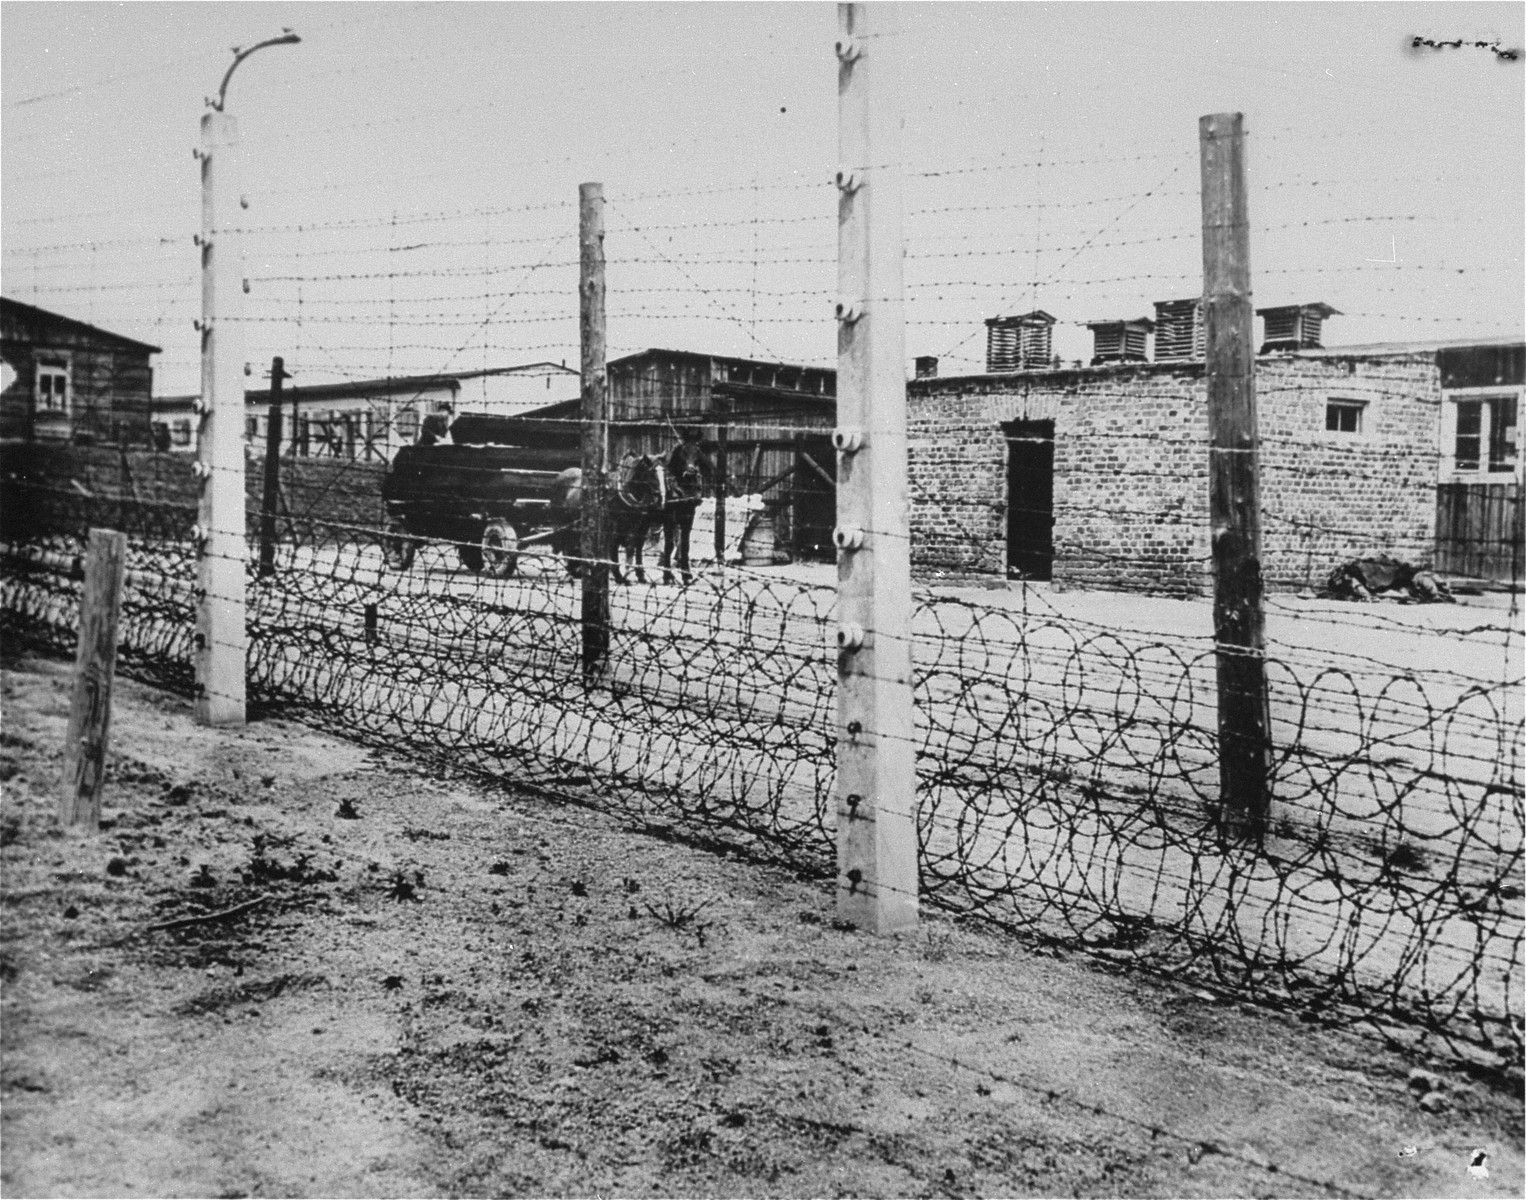 A section of the barbed wire fence and barracks in the Flossenbuerg concentration camp.